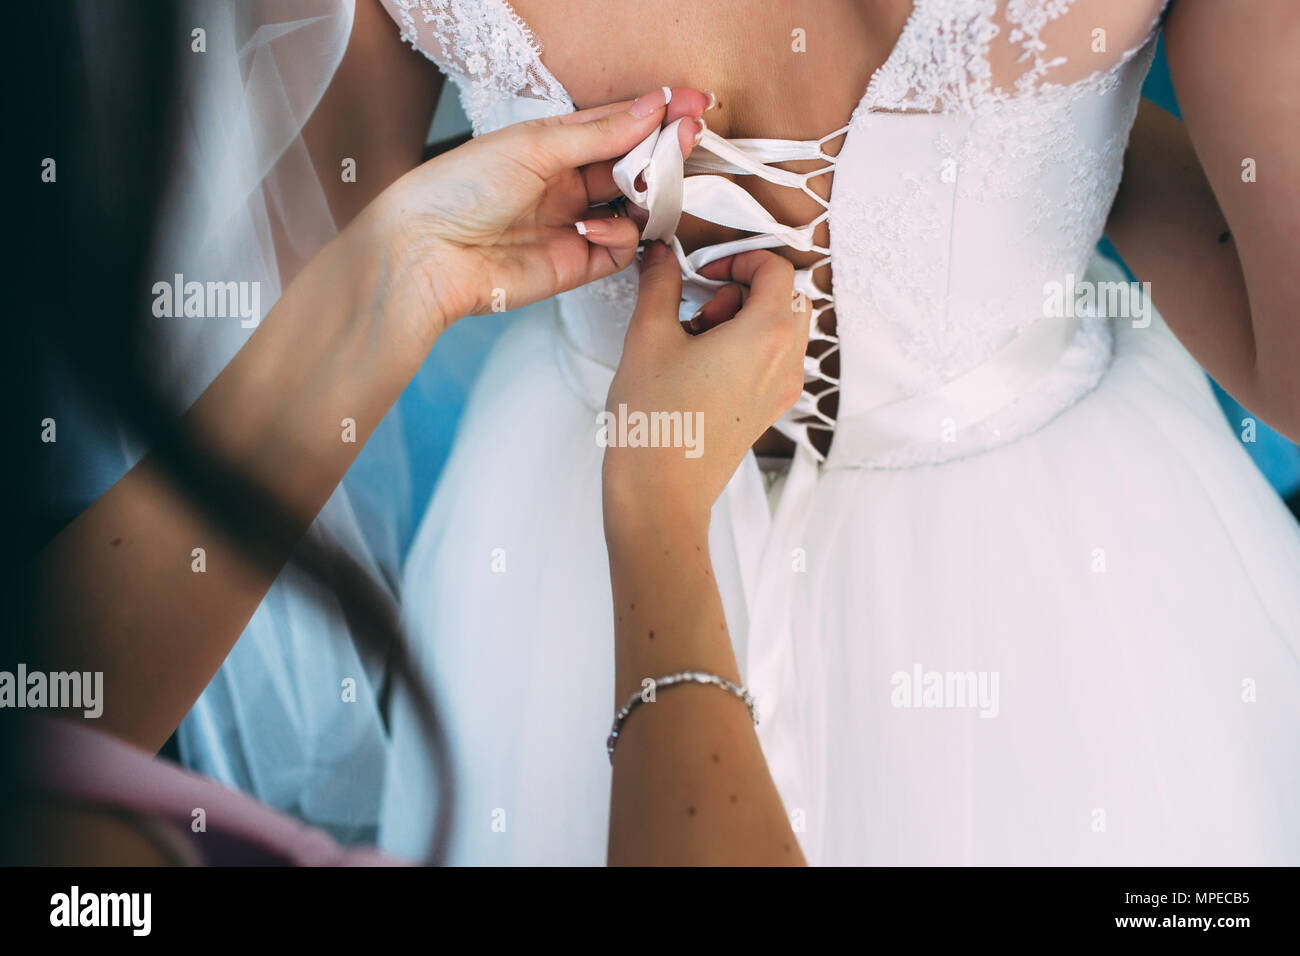 woman helps dress a bride on her wedding day, selective focus - Stock Image